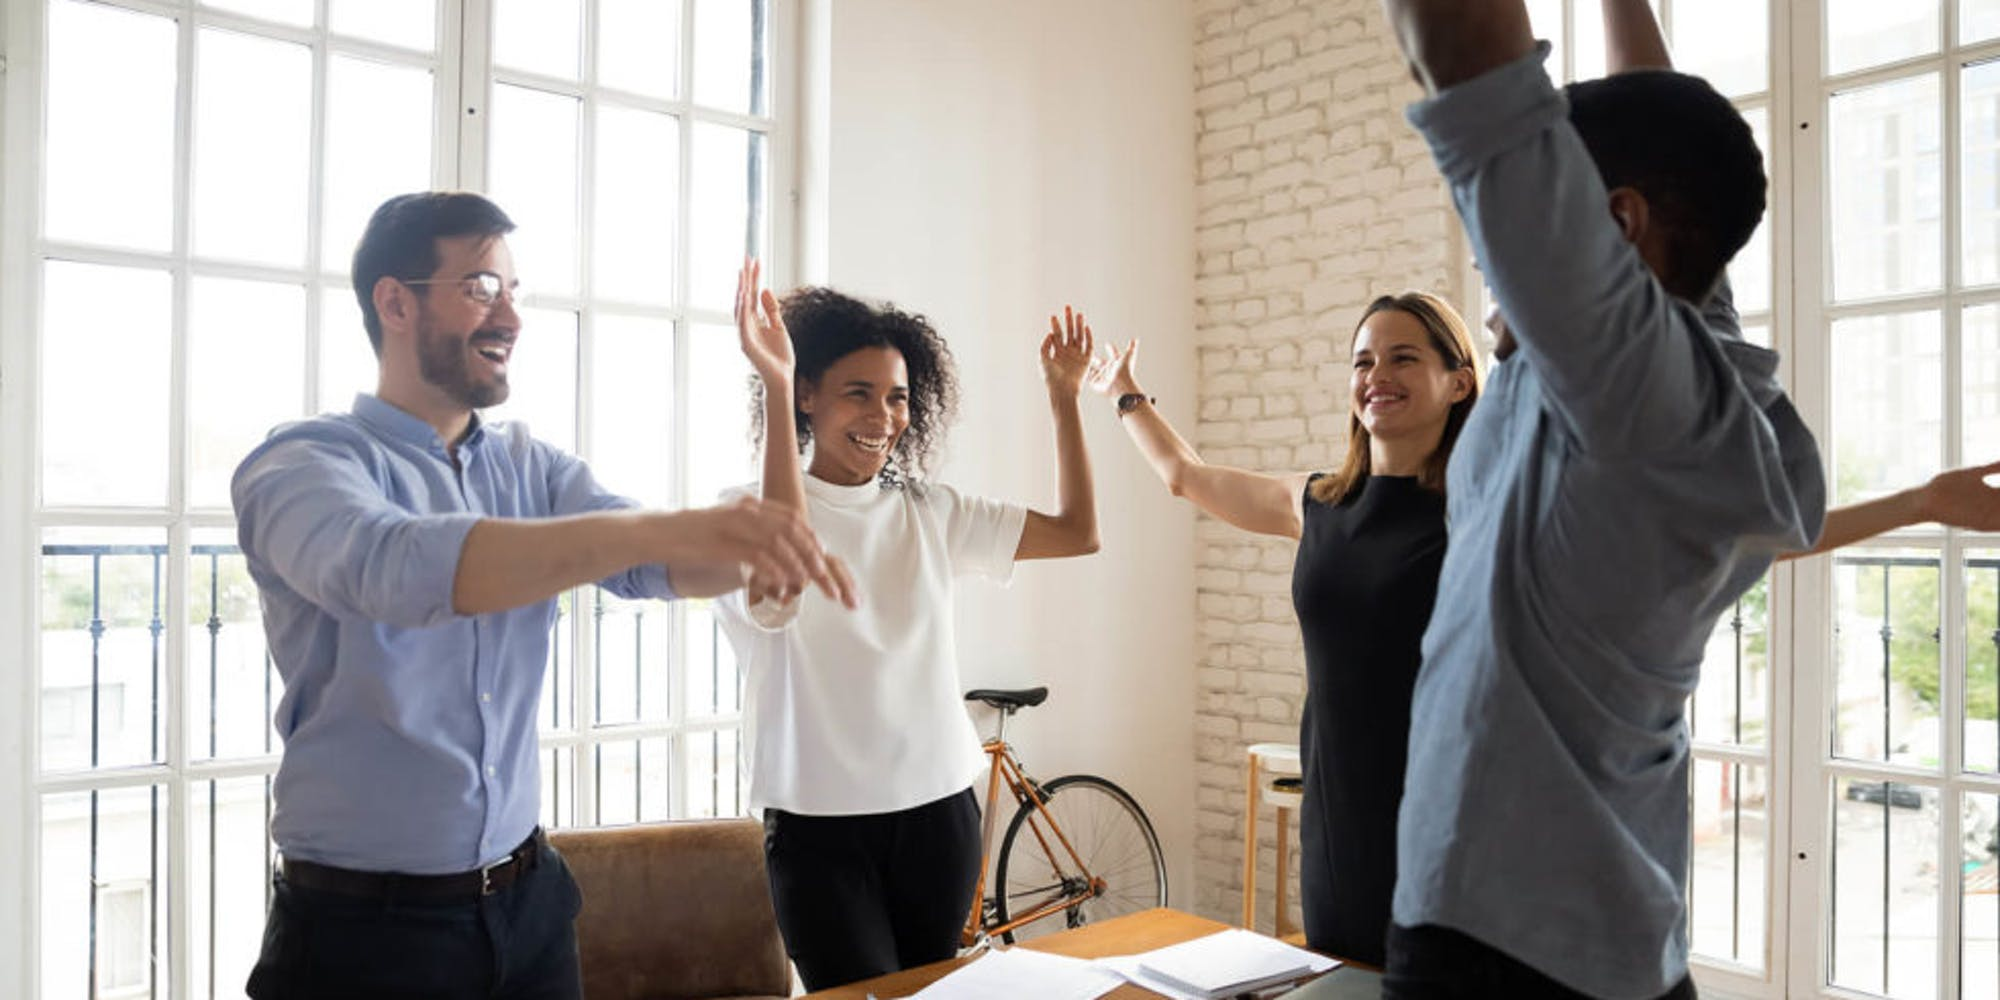 4 people raising their hands, celebrating in an office